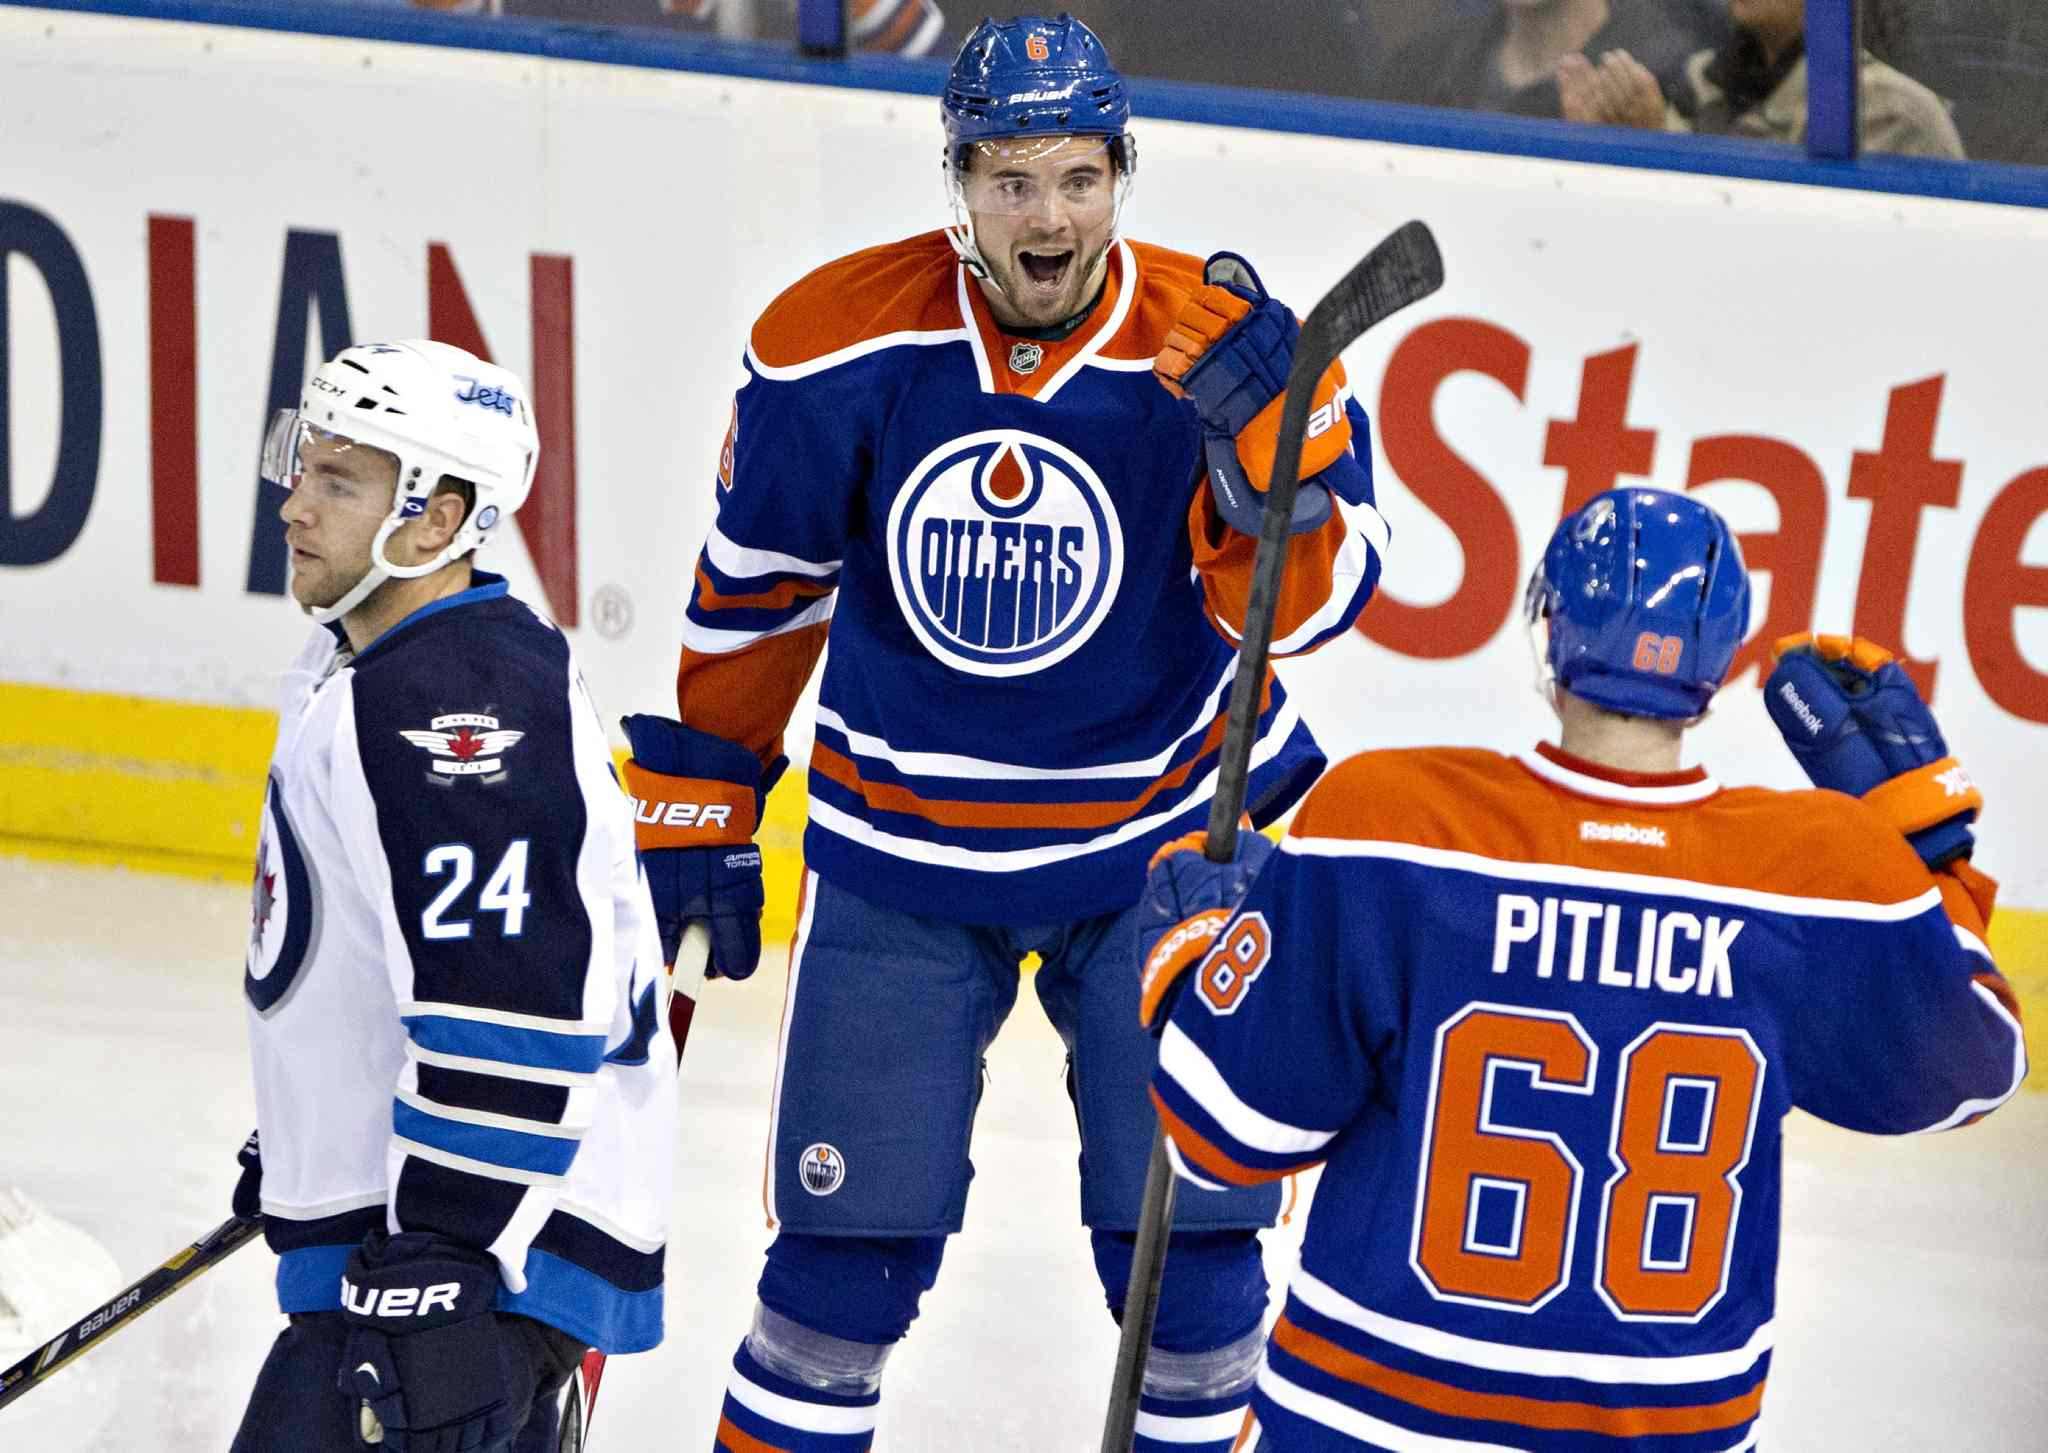 Winnipeg Jets defenceman Grant Clitsome skates by as Edmonton Oilers Jesse Joensuu (6) and Tyler Pitlick (68) celebrate a goal during the second period.